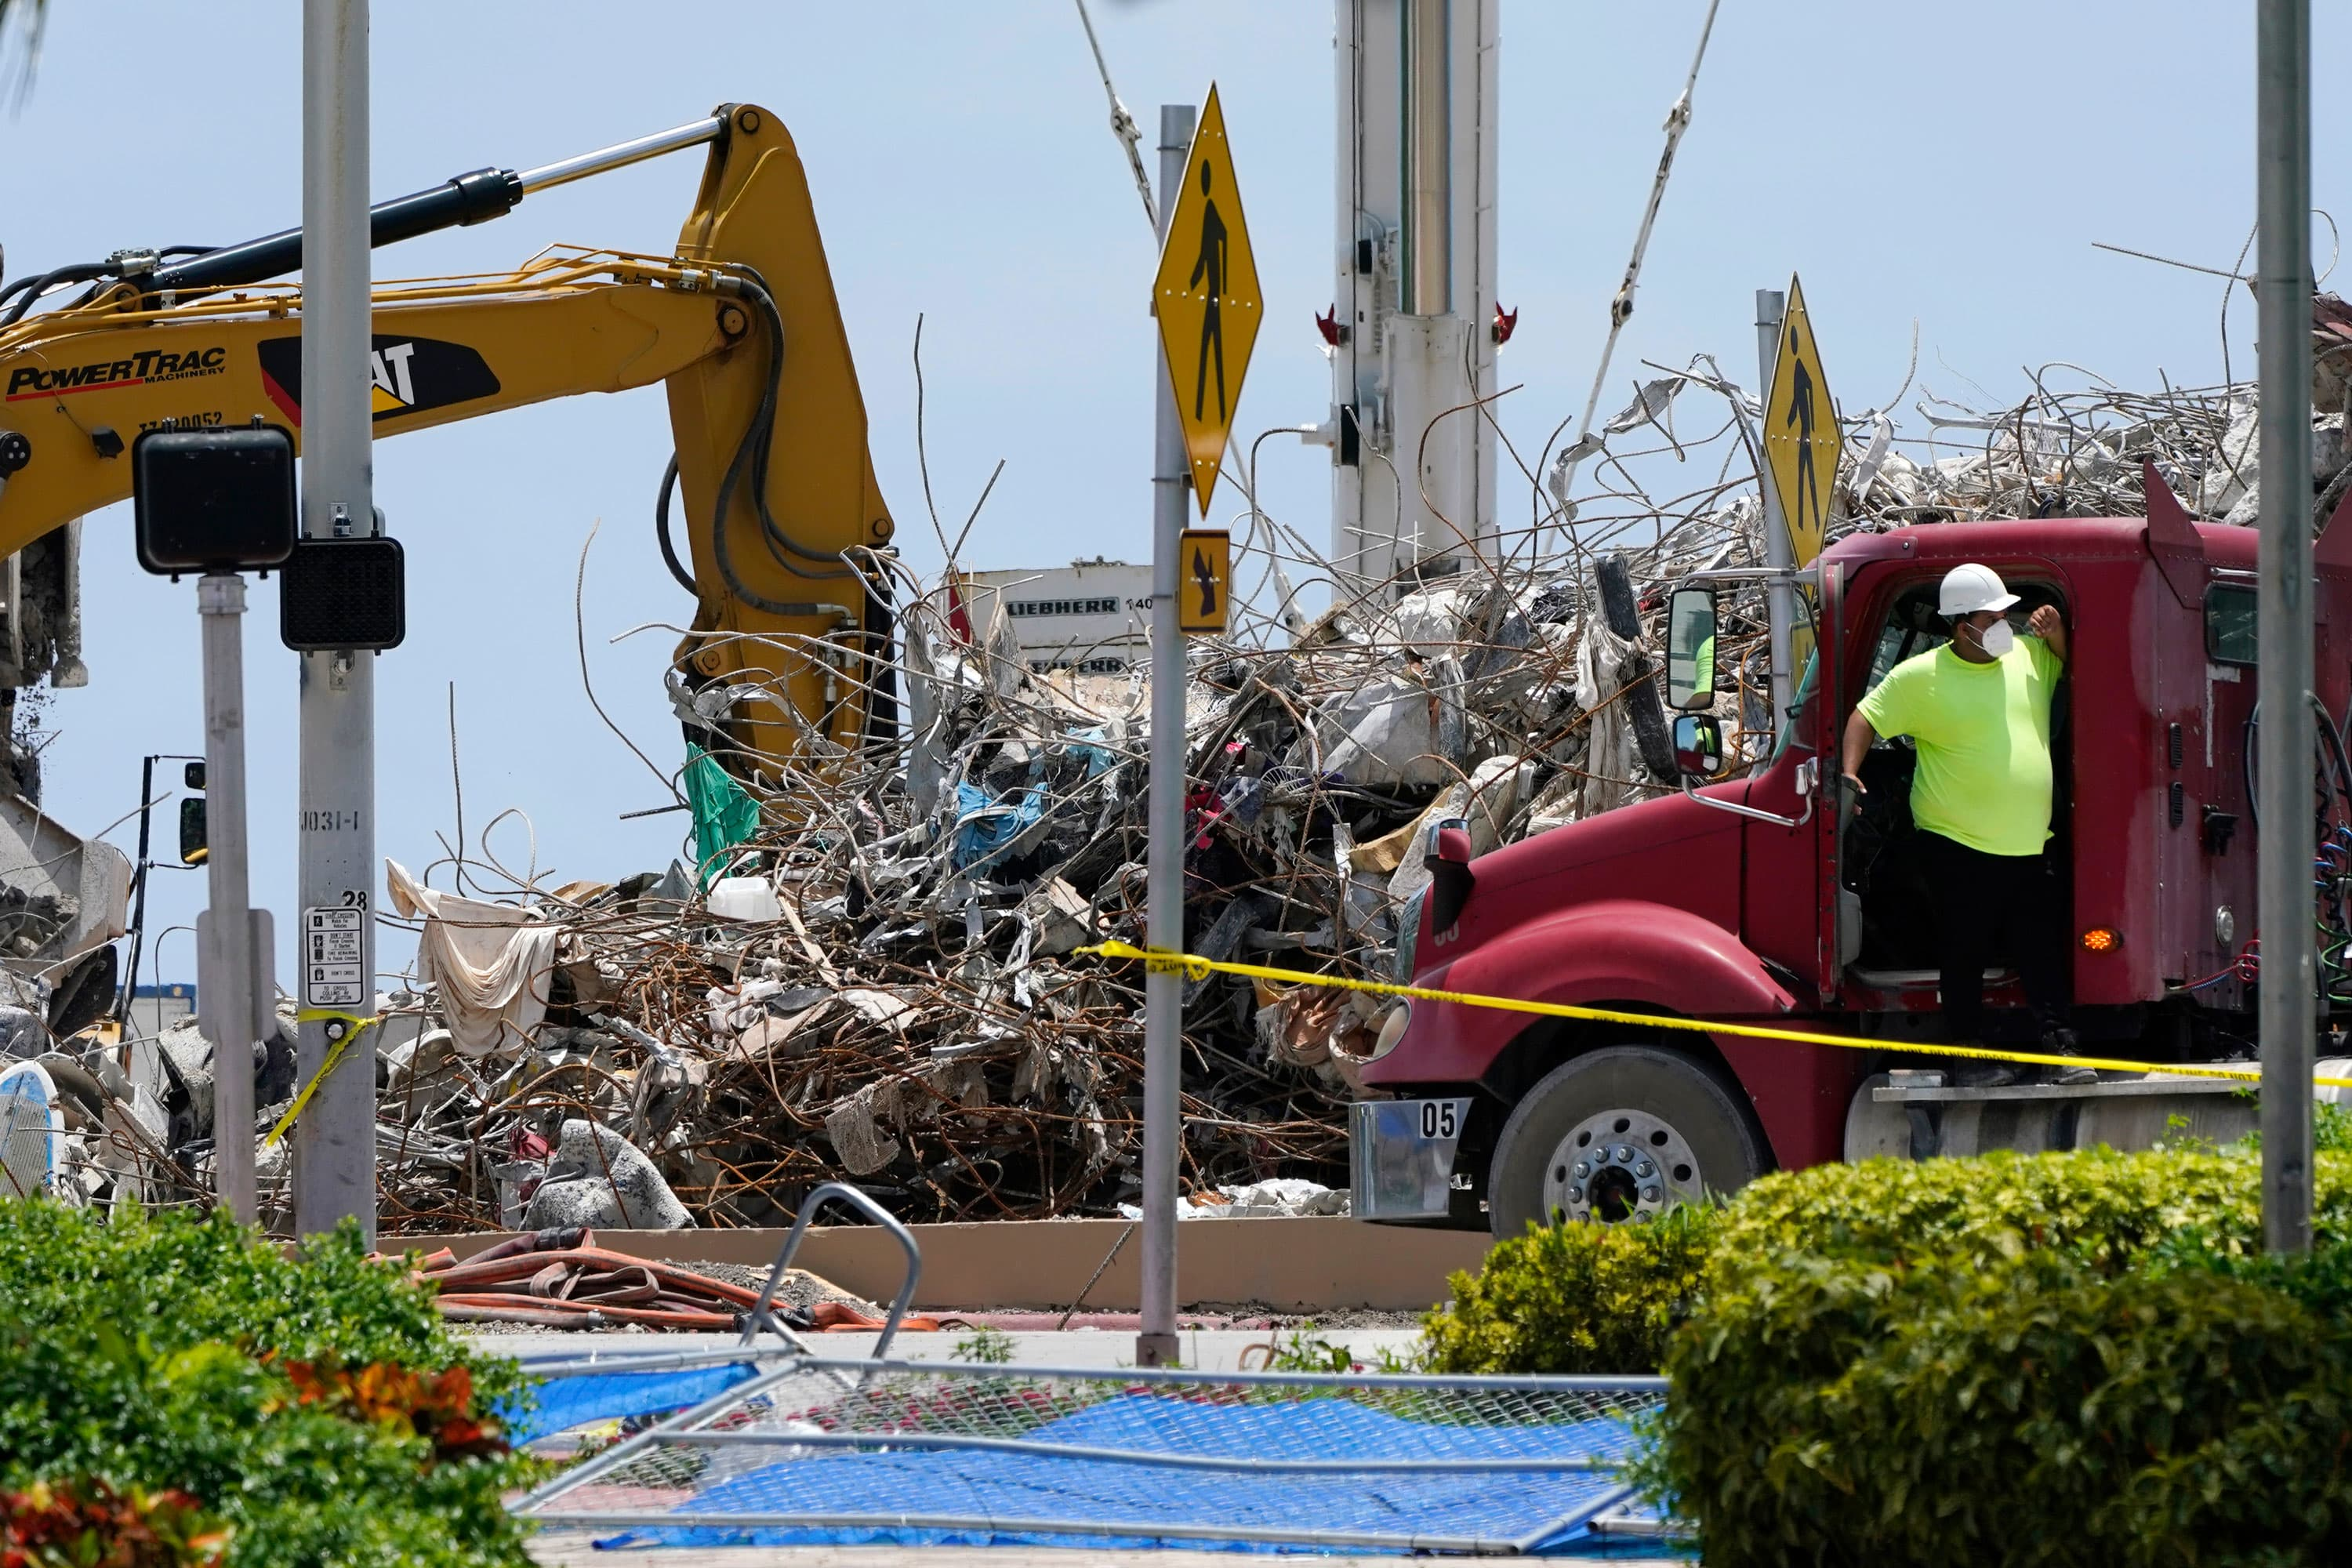 Death toll rises to 97 in Surfside condo collapse; judge approves sale of site